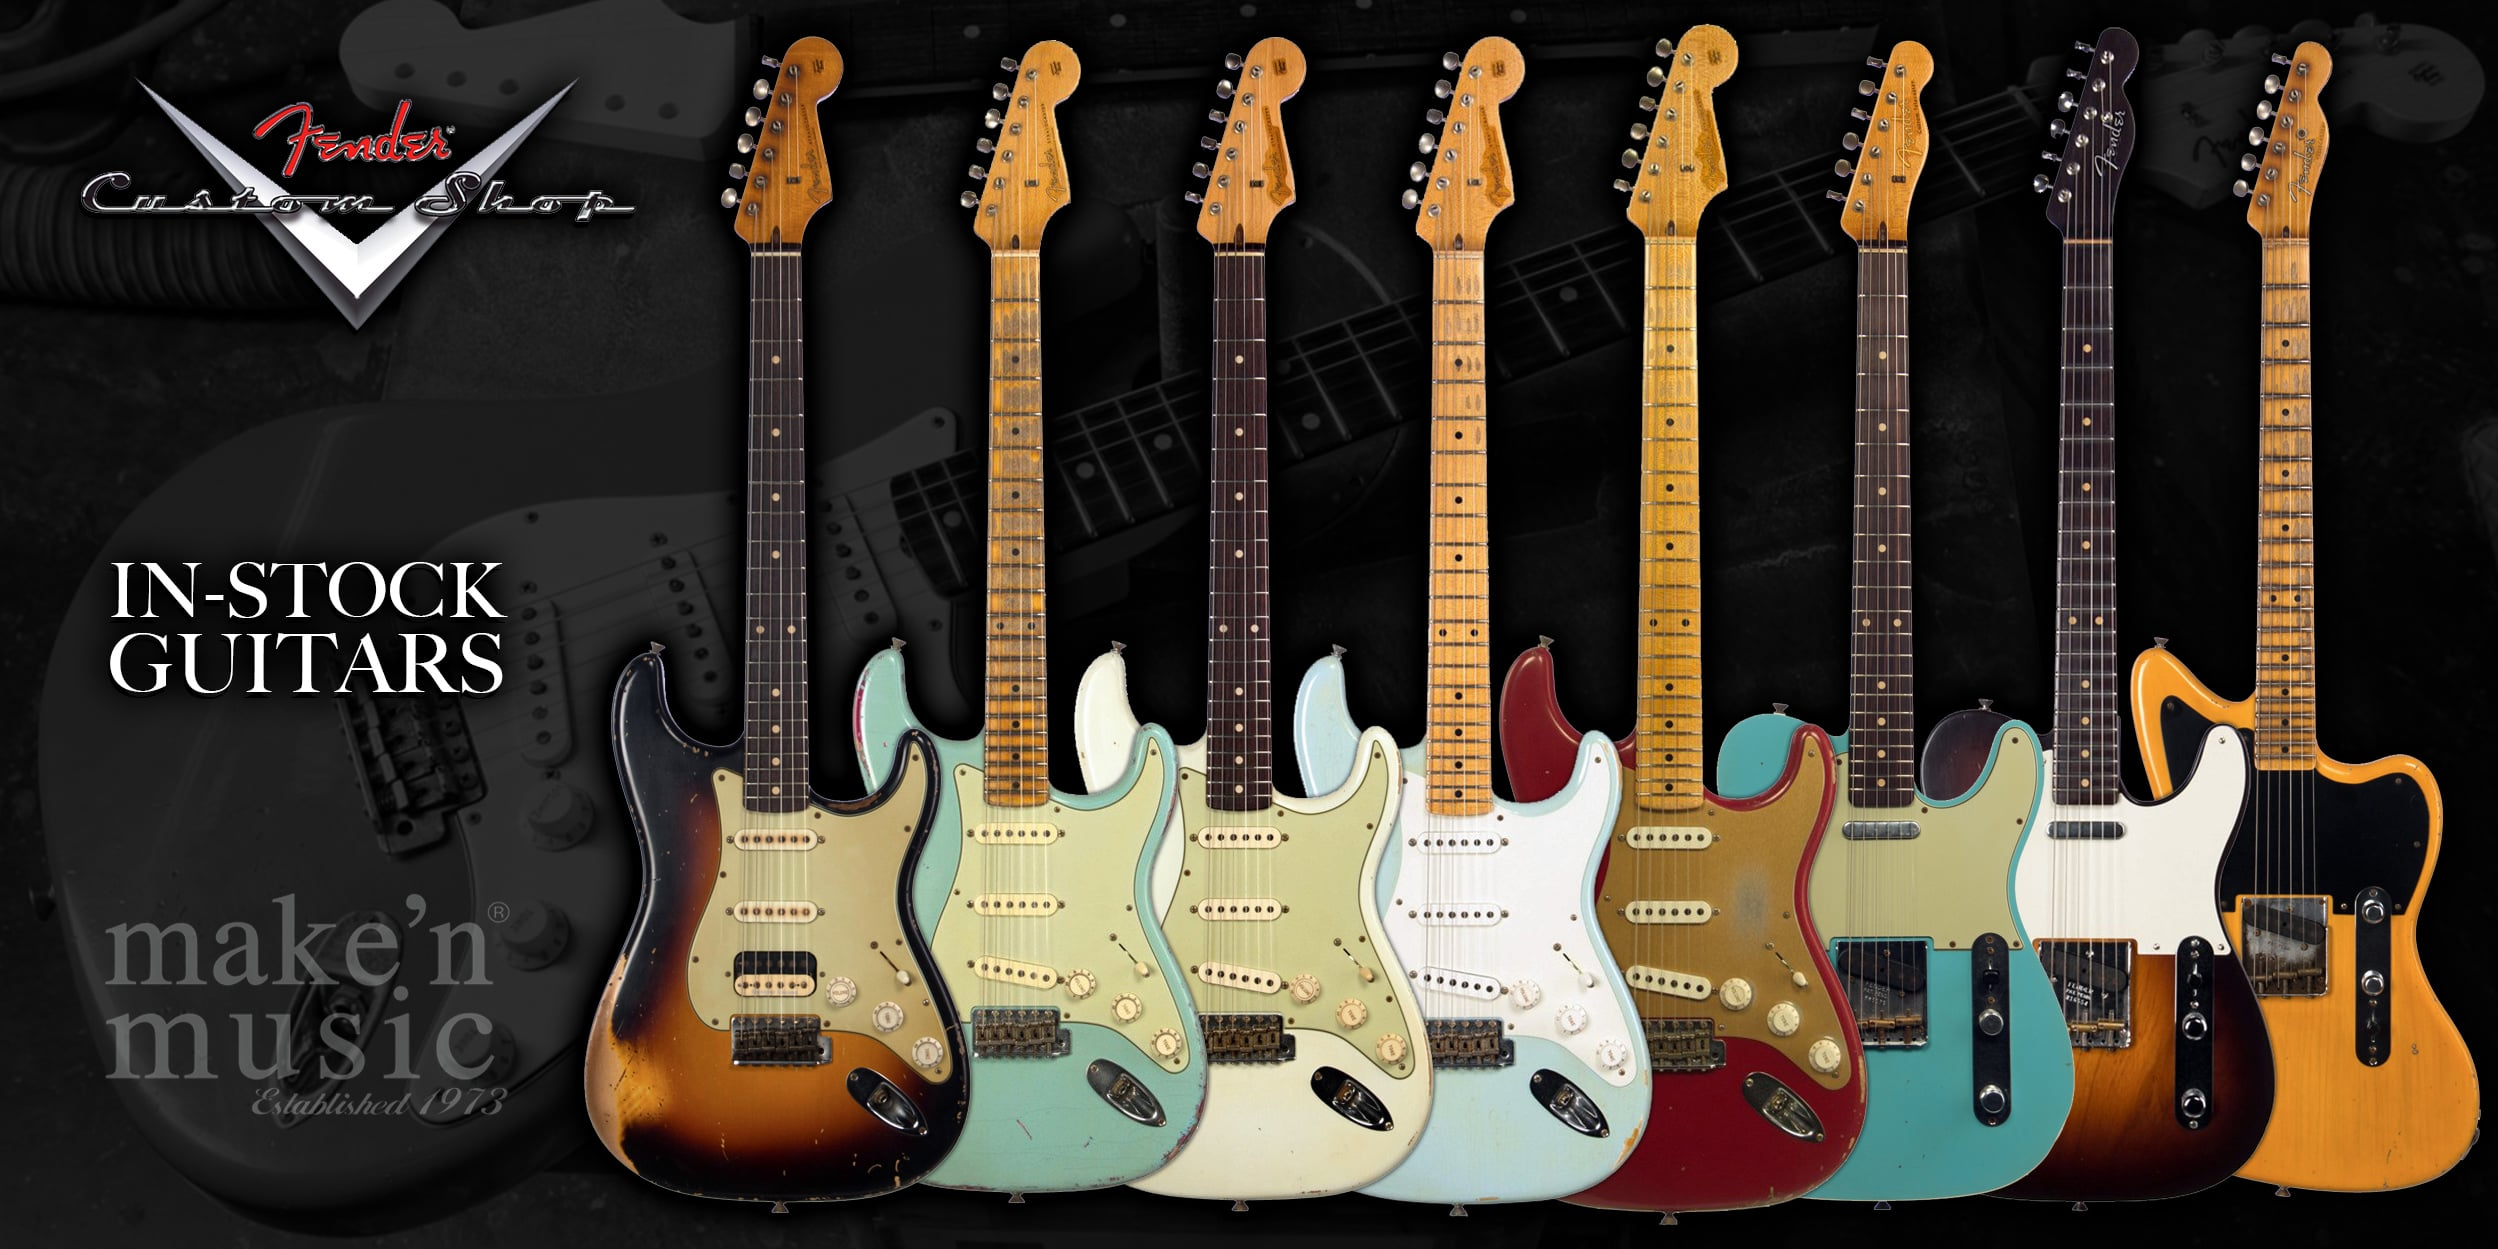 Fender Custom Shop In-Stock Guitars